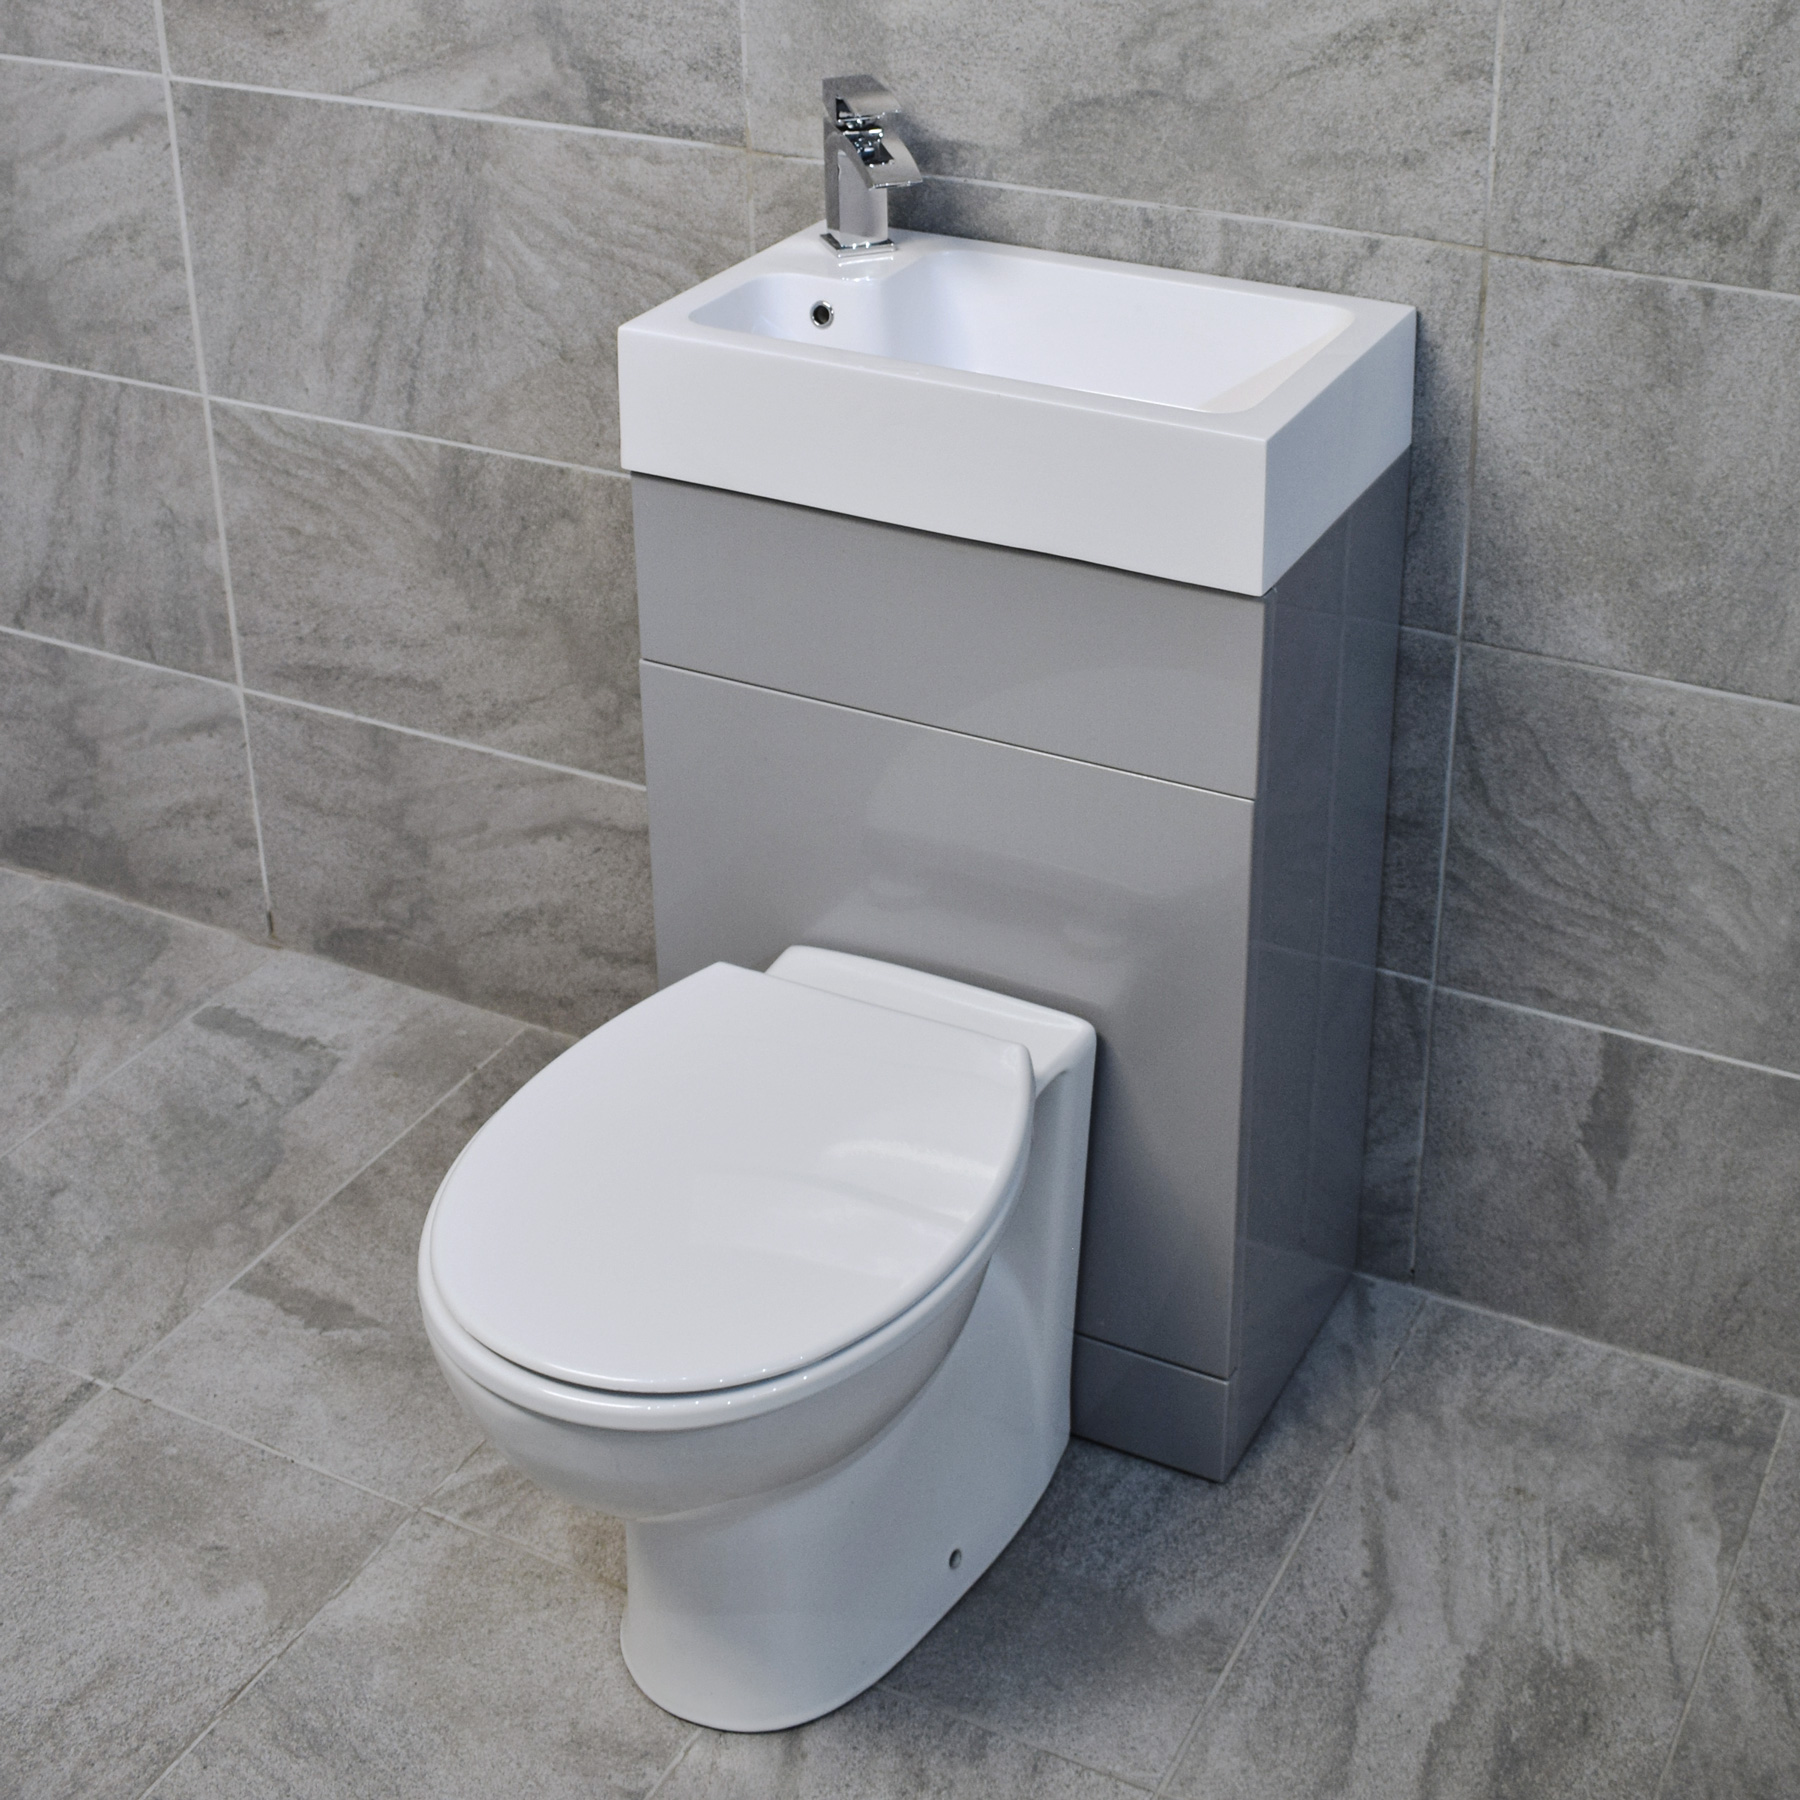 Grey Cloakroom All In One Space Saving Toilet Amp Basin Sink